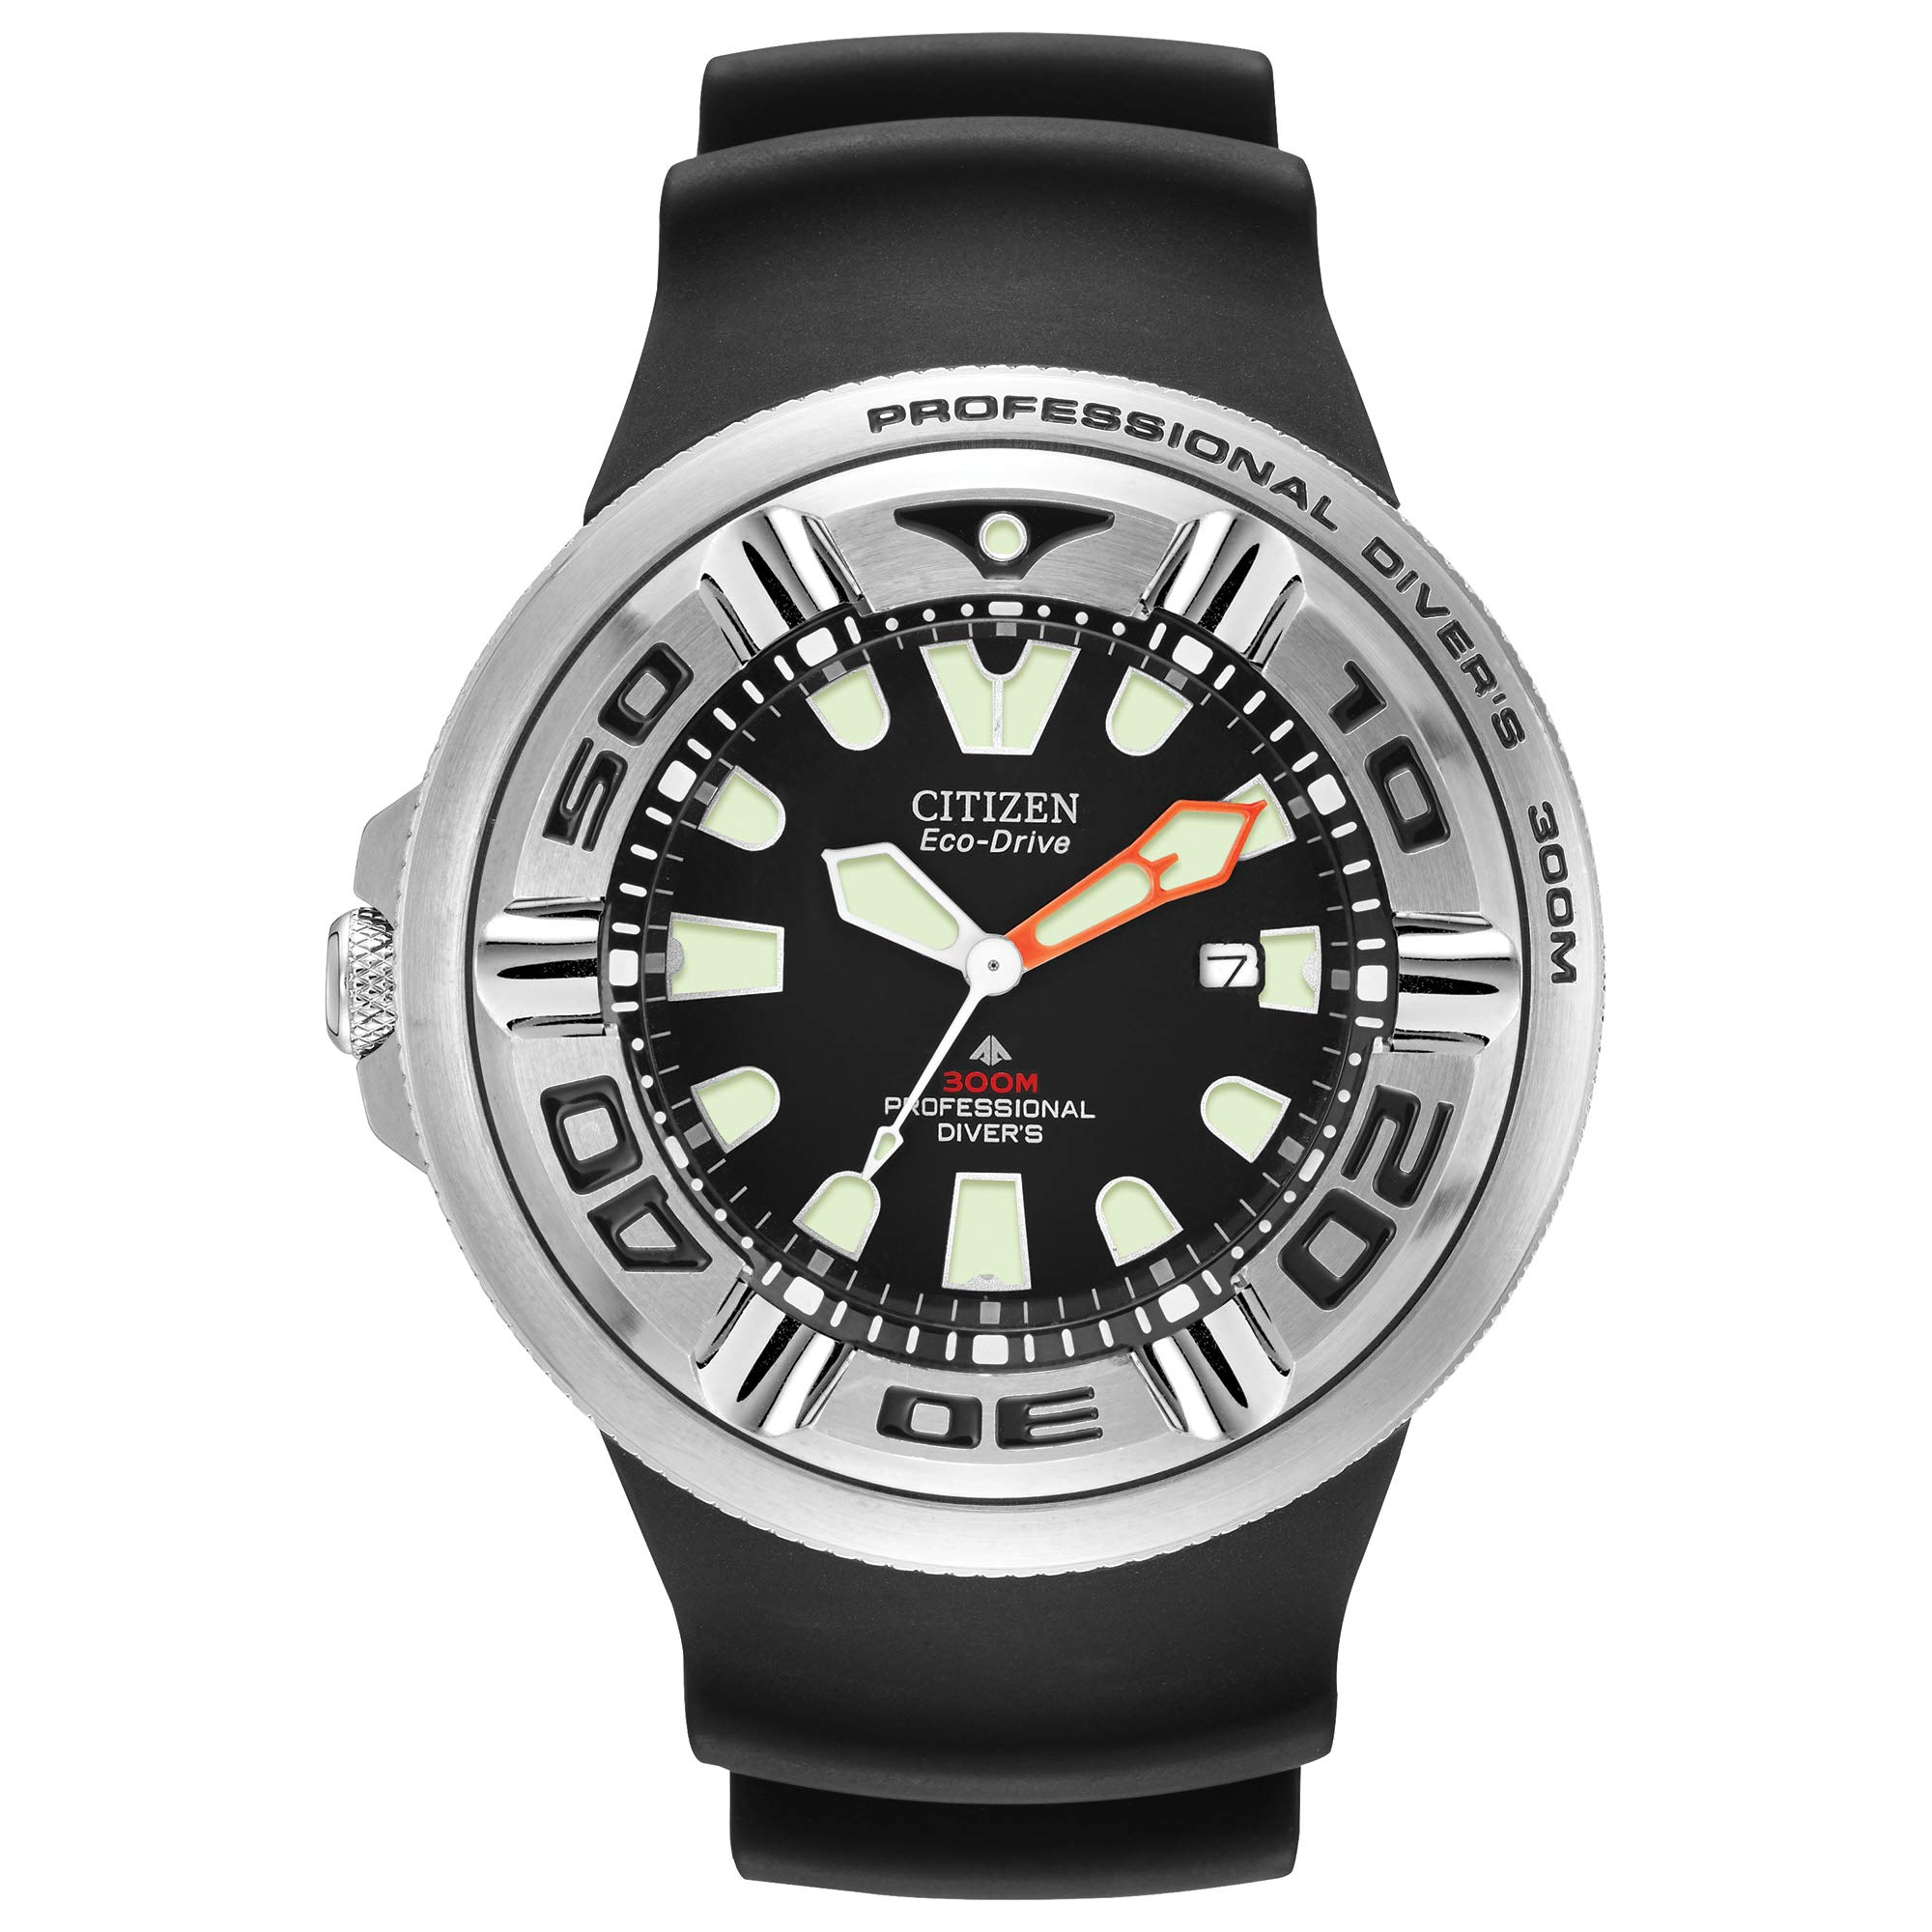 Men's Eco-Drive Promaster Diver Watch with Date, BJ8050-08E